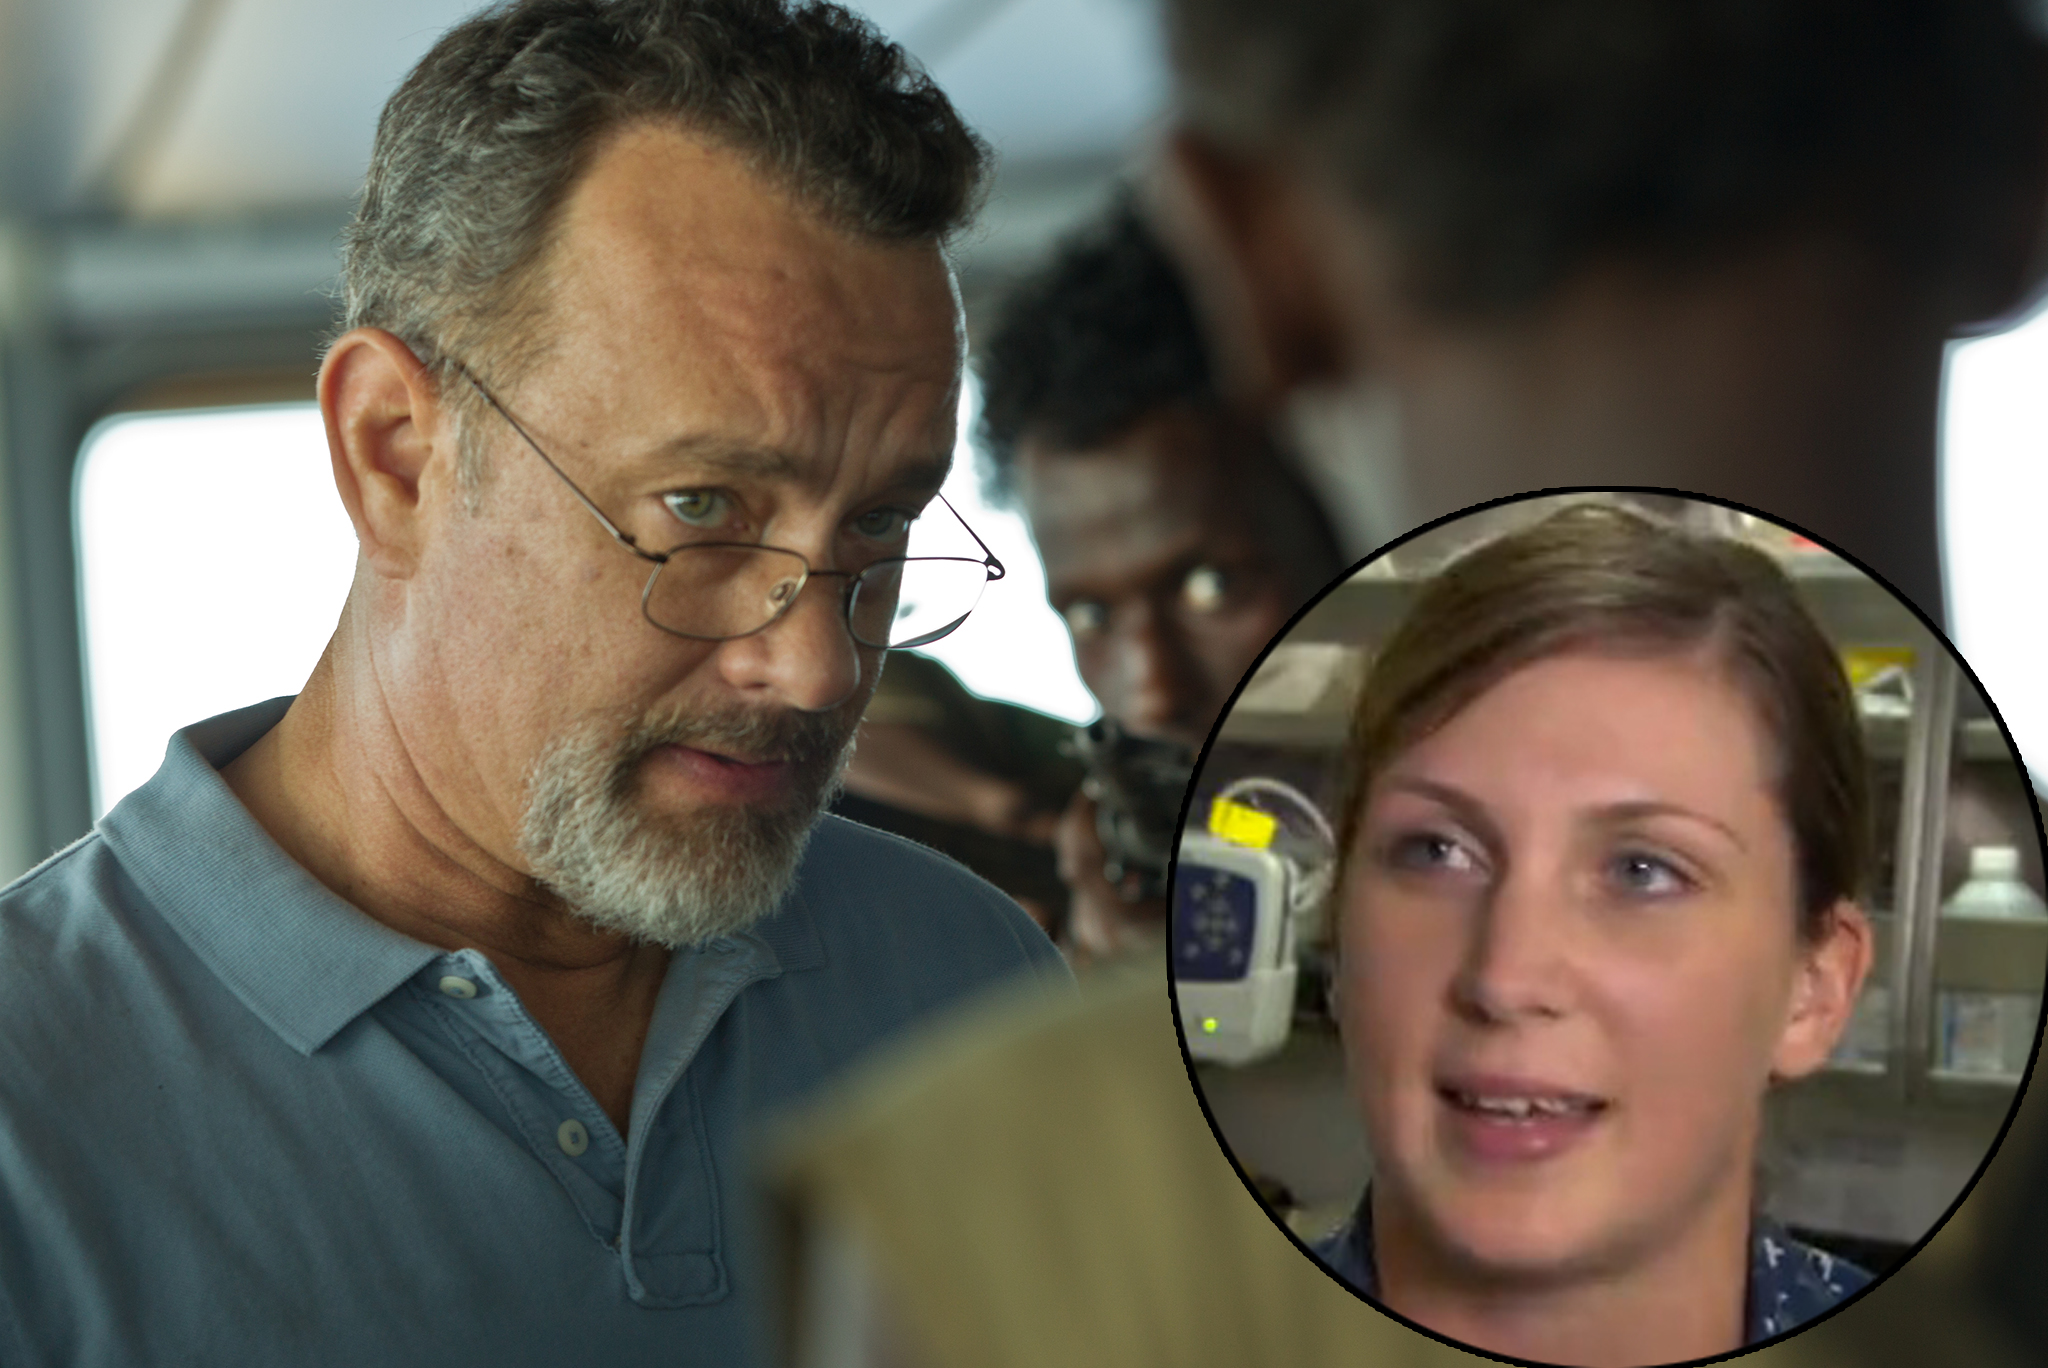 Tom Hanks and Navy Hospital Corpsman Danielle Albert. Photos courtesy of Columbia Pictures and CBS This Morning.